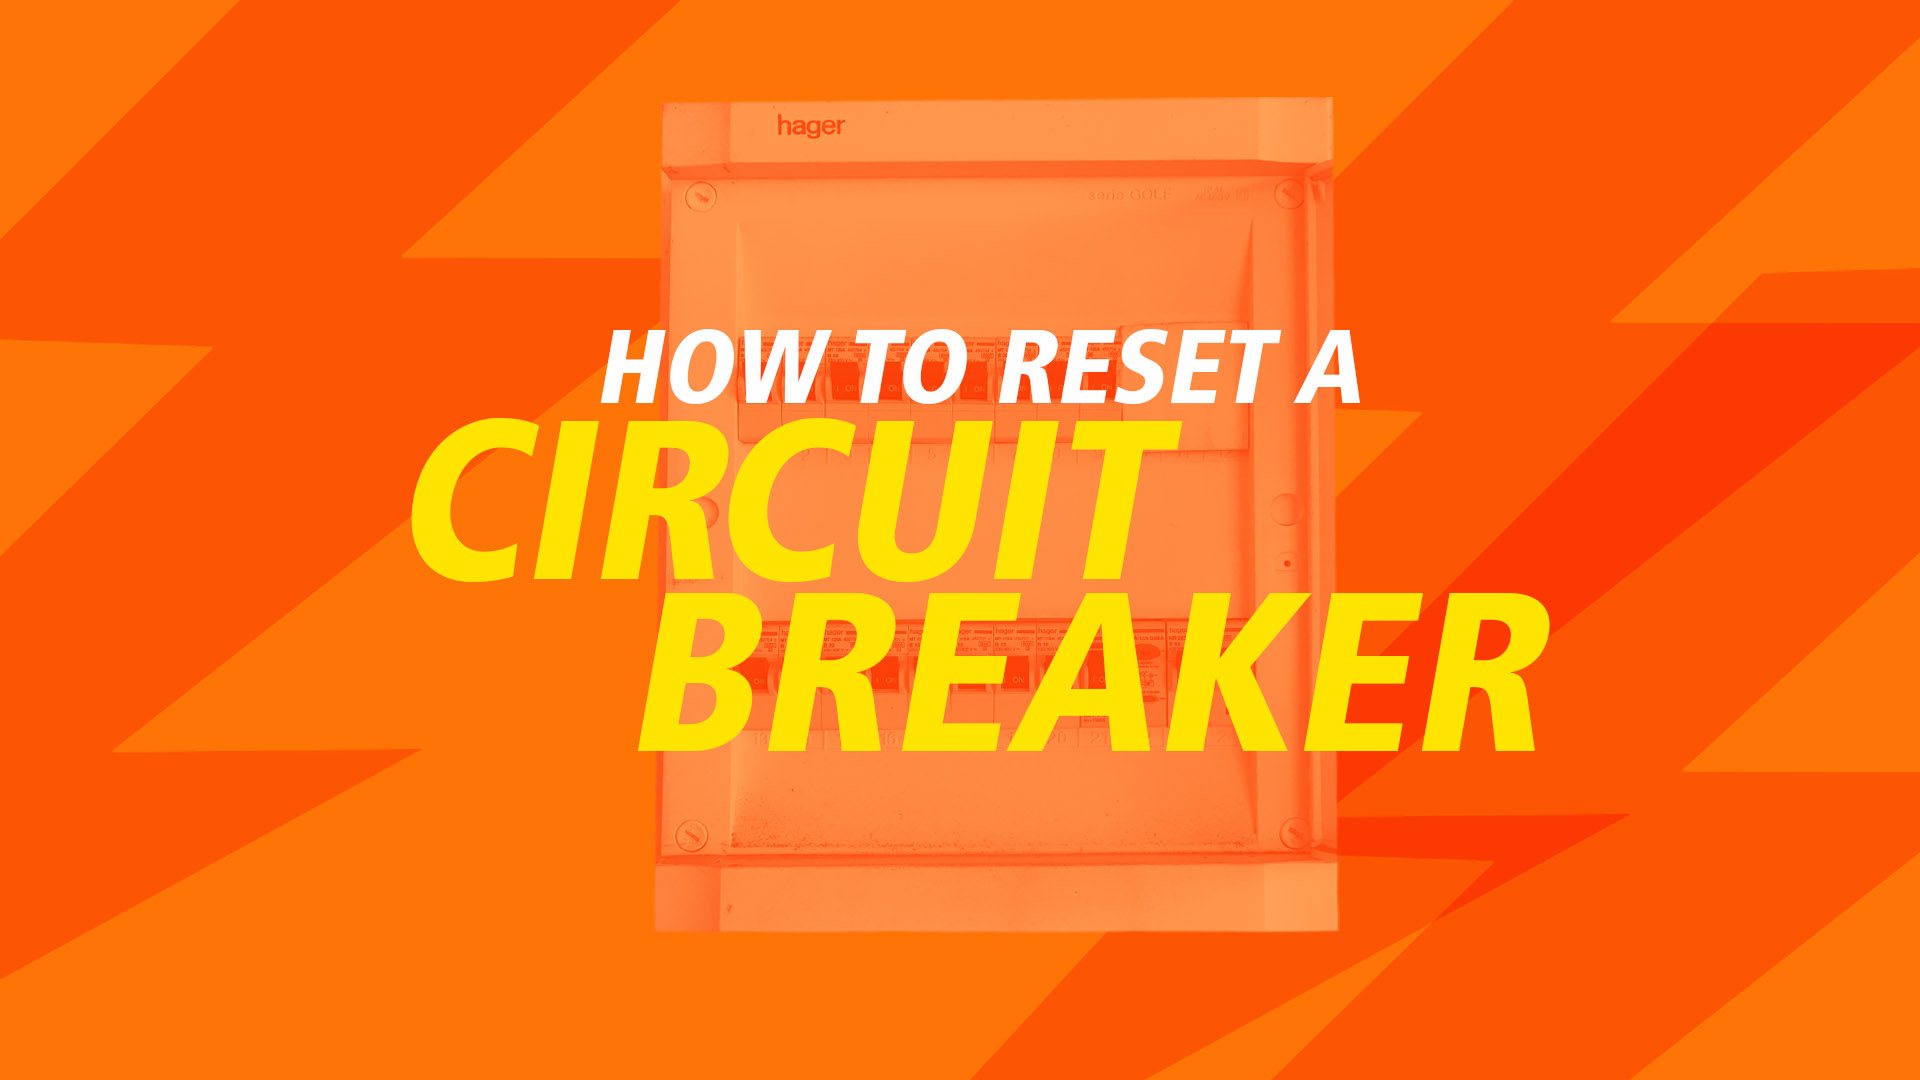 How To Reset A Circuit Breaker Adult Keeps Immediately Tripping After Electrical